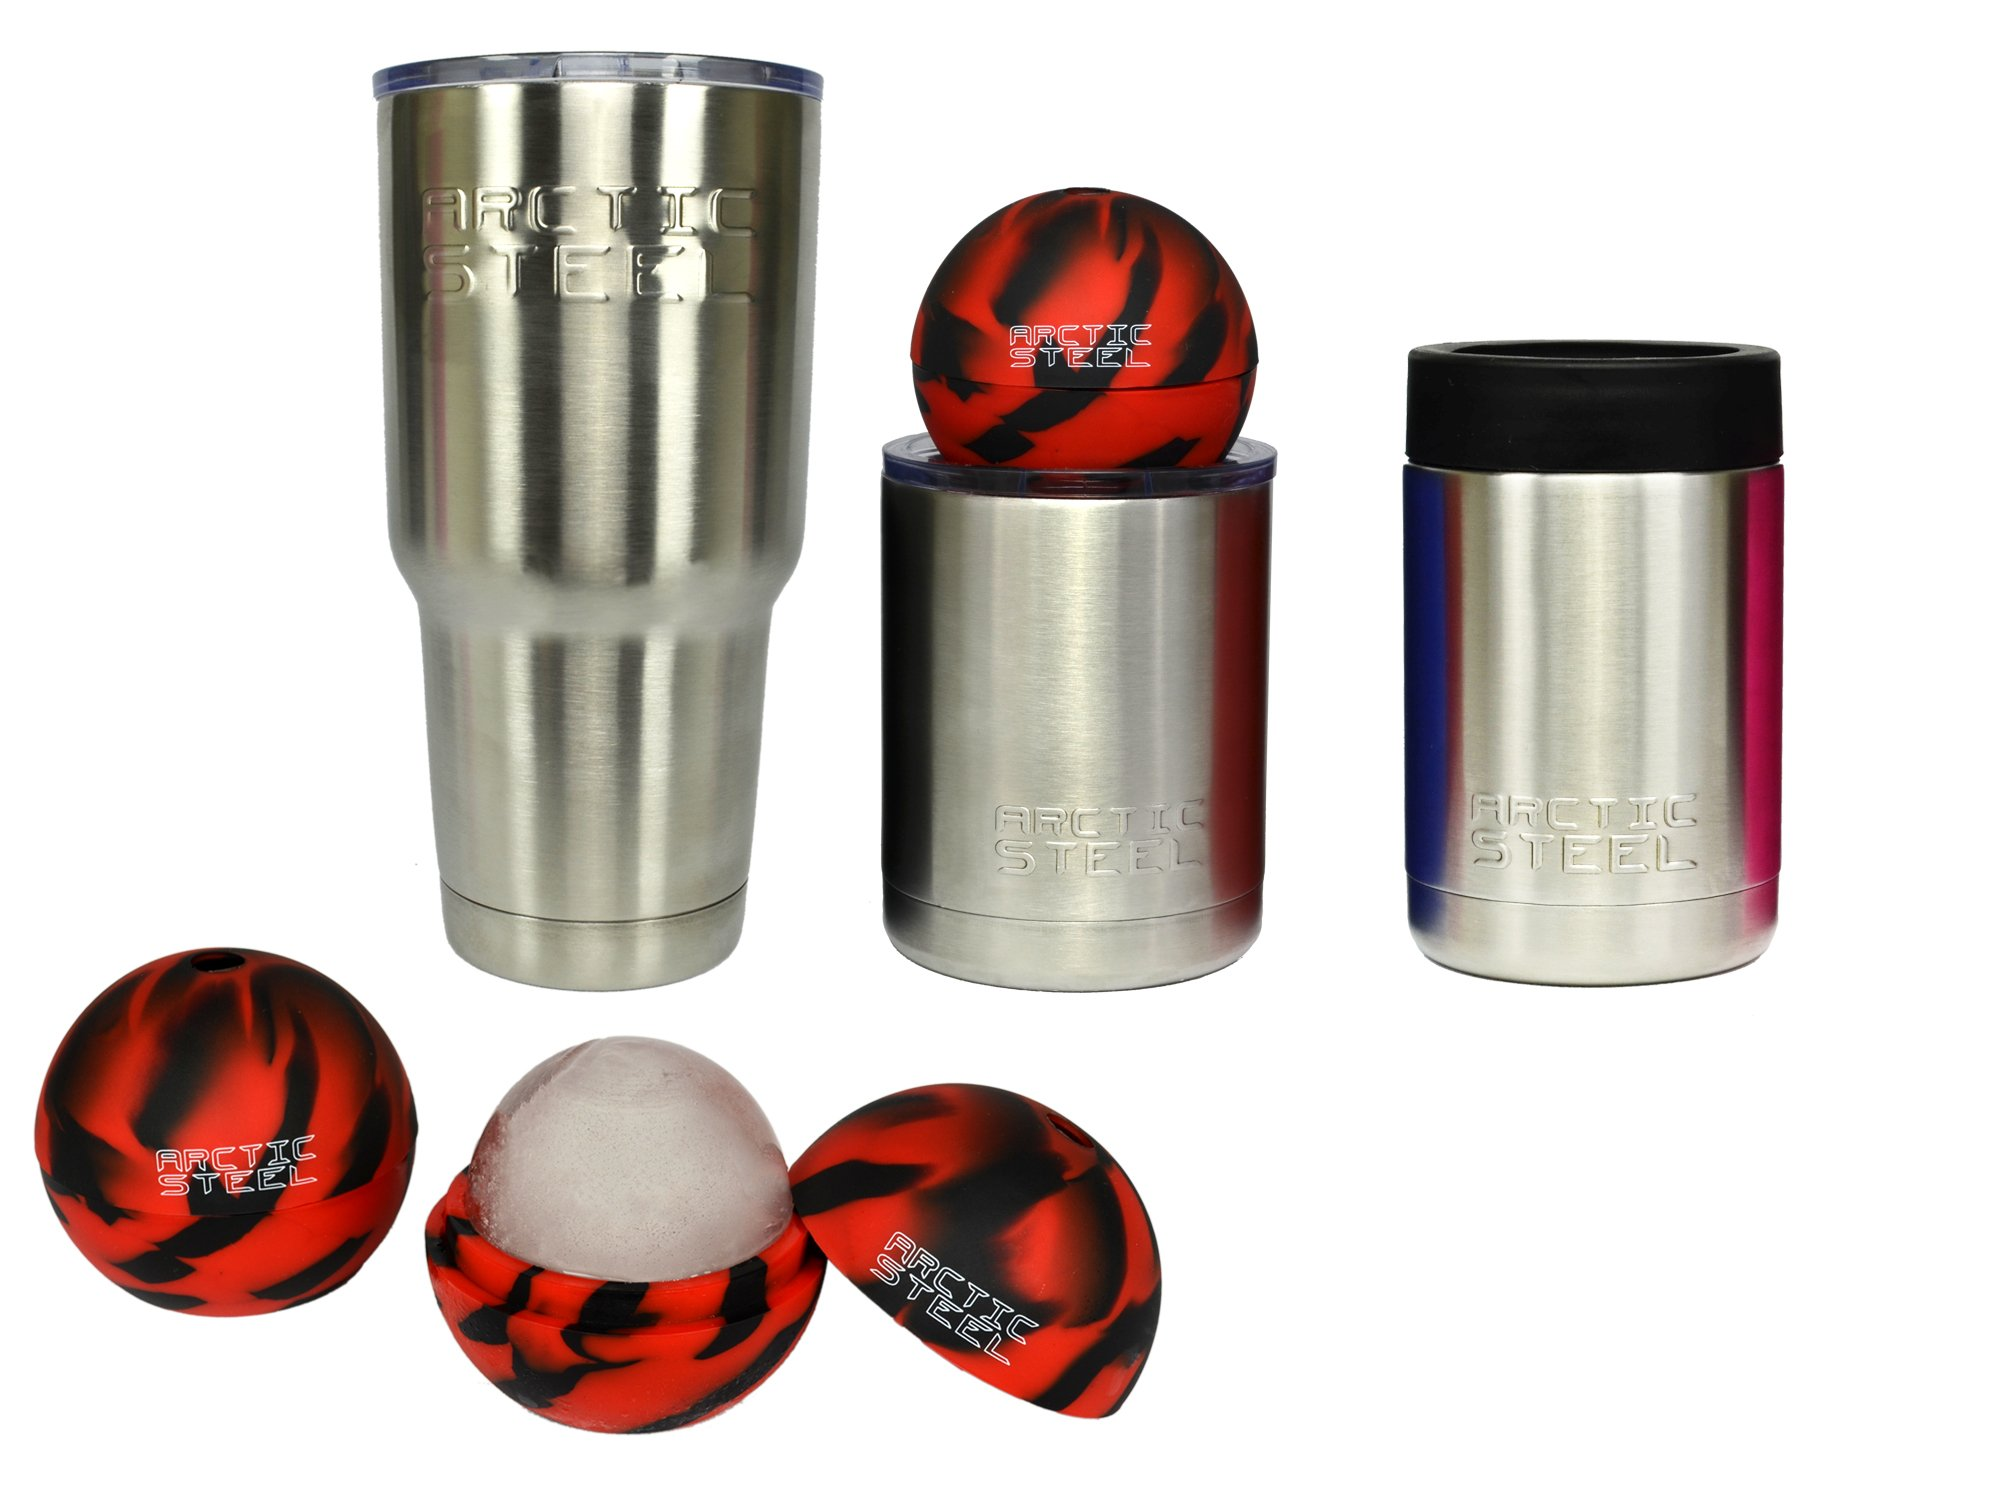 ARCTIC STEEL Cups Christmas Gift Set, Stainless Steel Double Wall Vacuum Insulated, will Keep Your Drinks Cold to the Last Drop, One 30 oz., One 10 oz., One Can Koozie